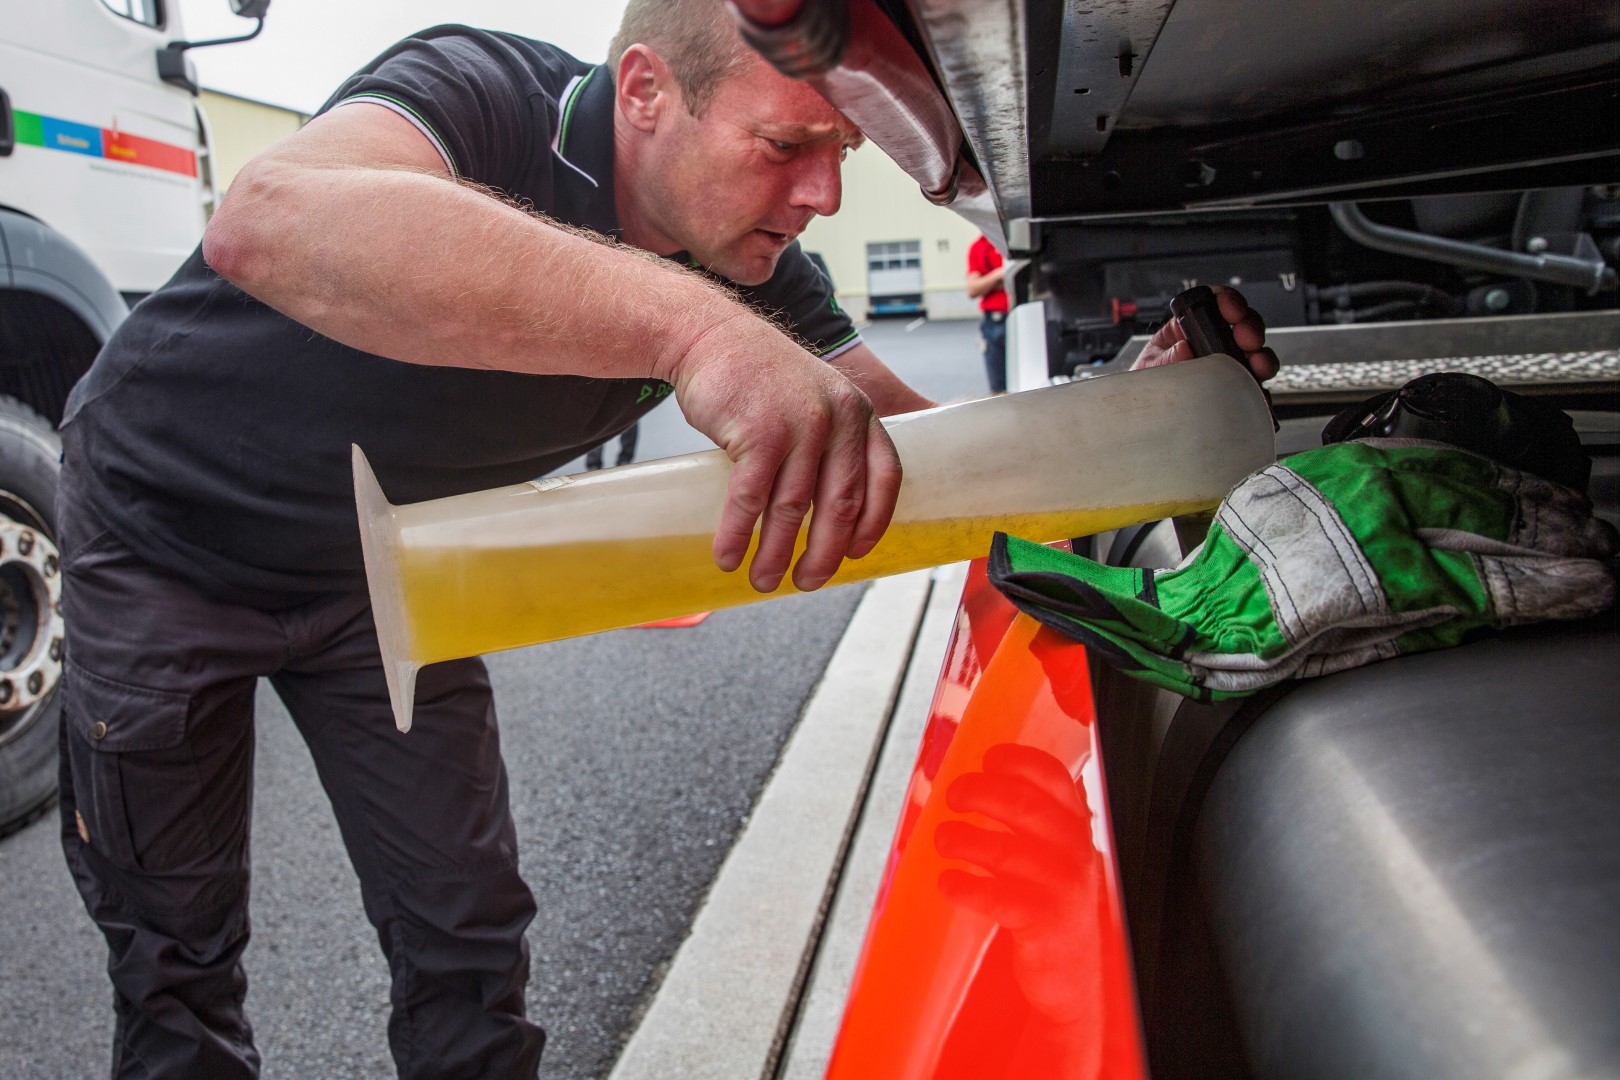 Fuelling Mercedes lorry for Efficiency Run